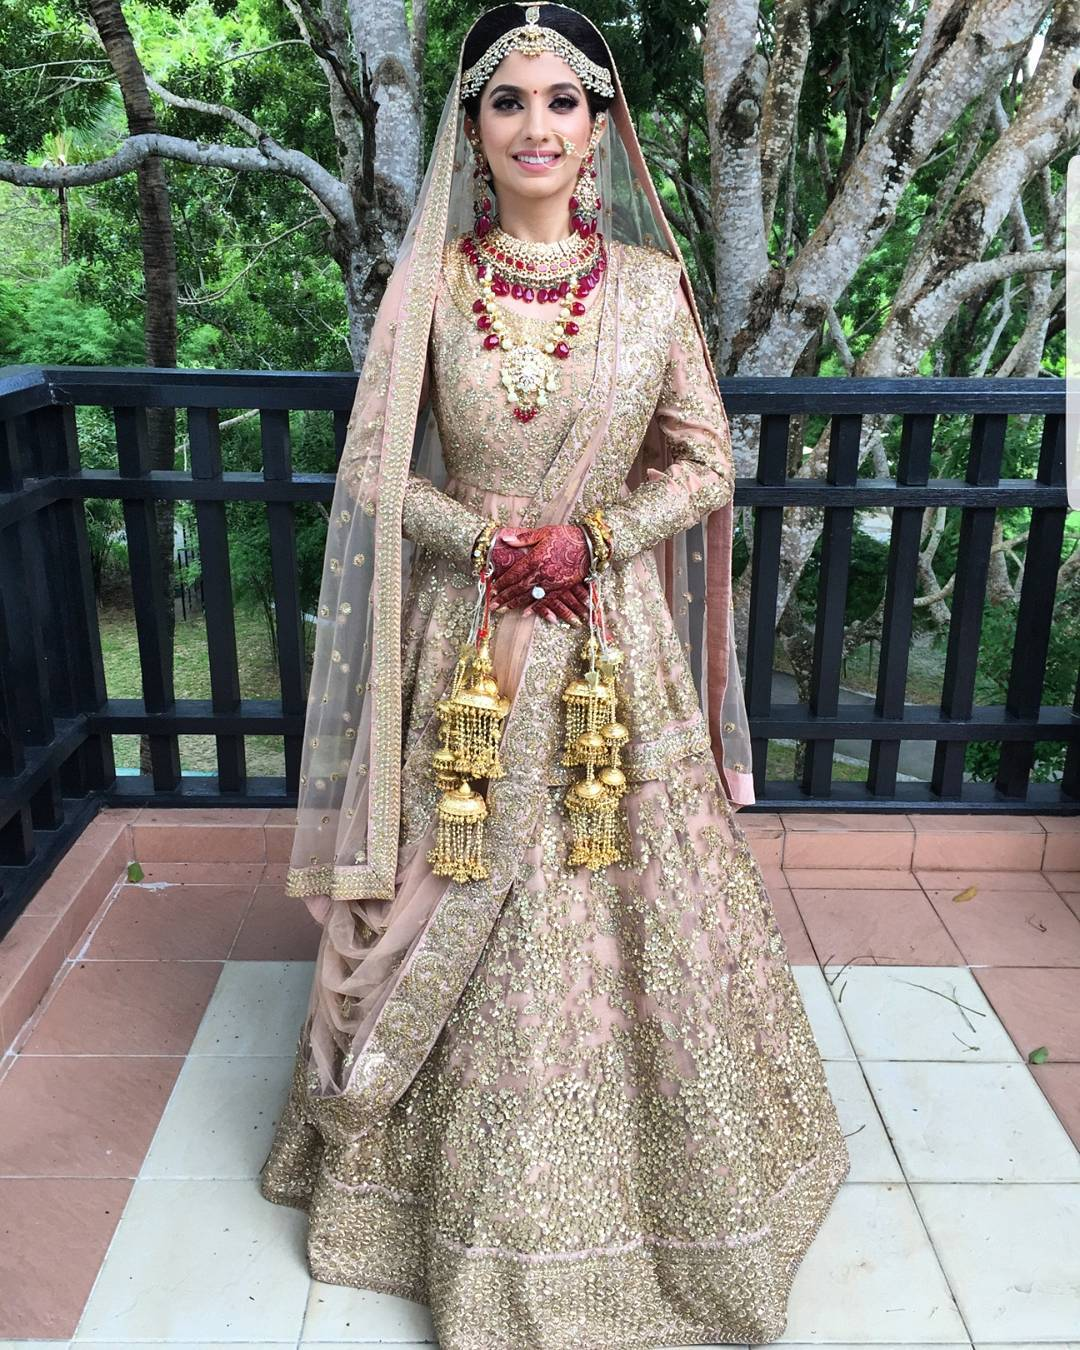 Real Indian Brides Who Wore An All-Gold Outfit On Their